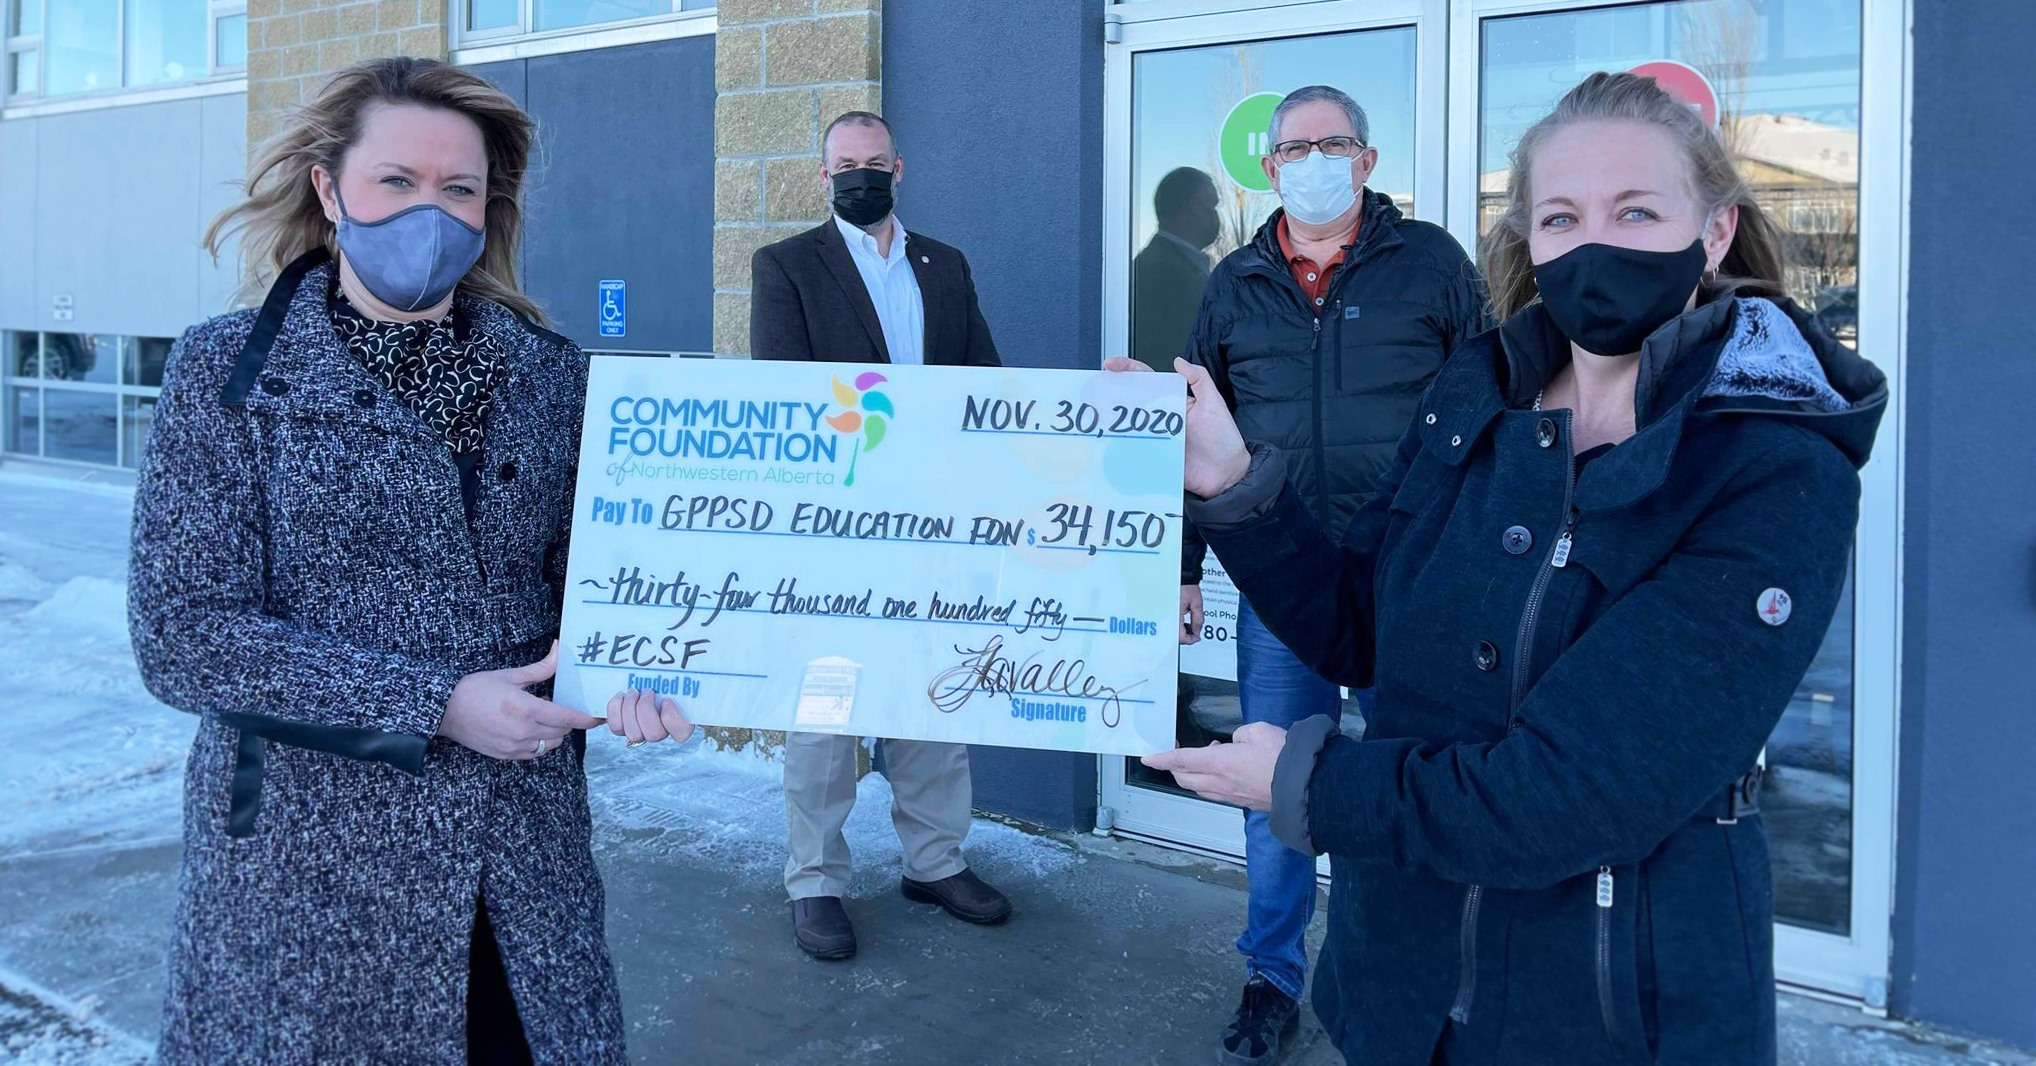 GPPSD Education Foundation received $34,150.00 in support of student health & wellness